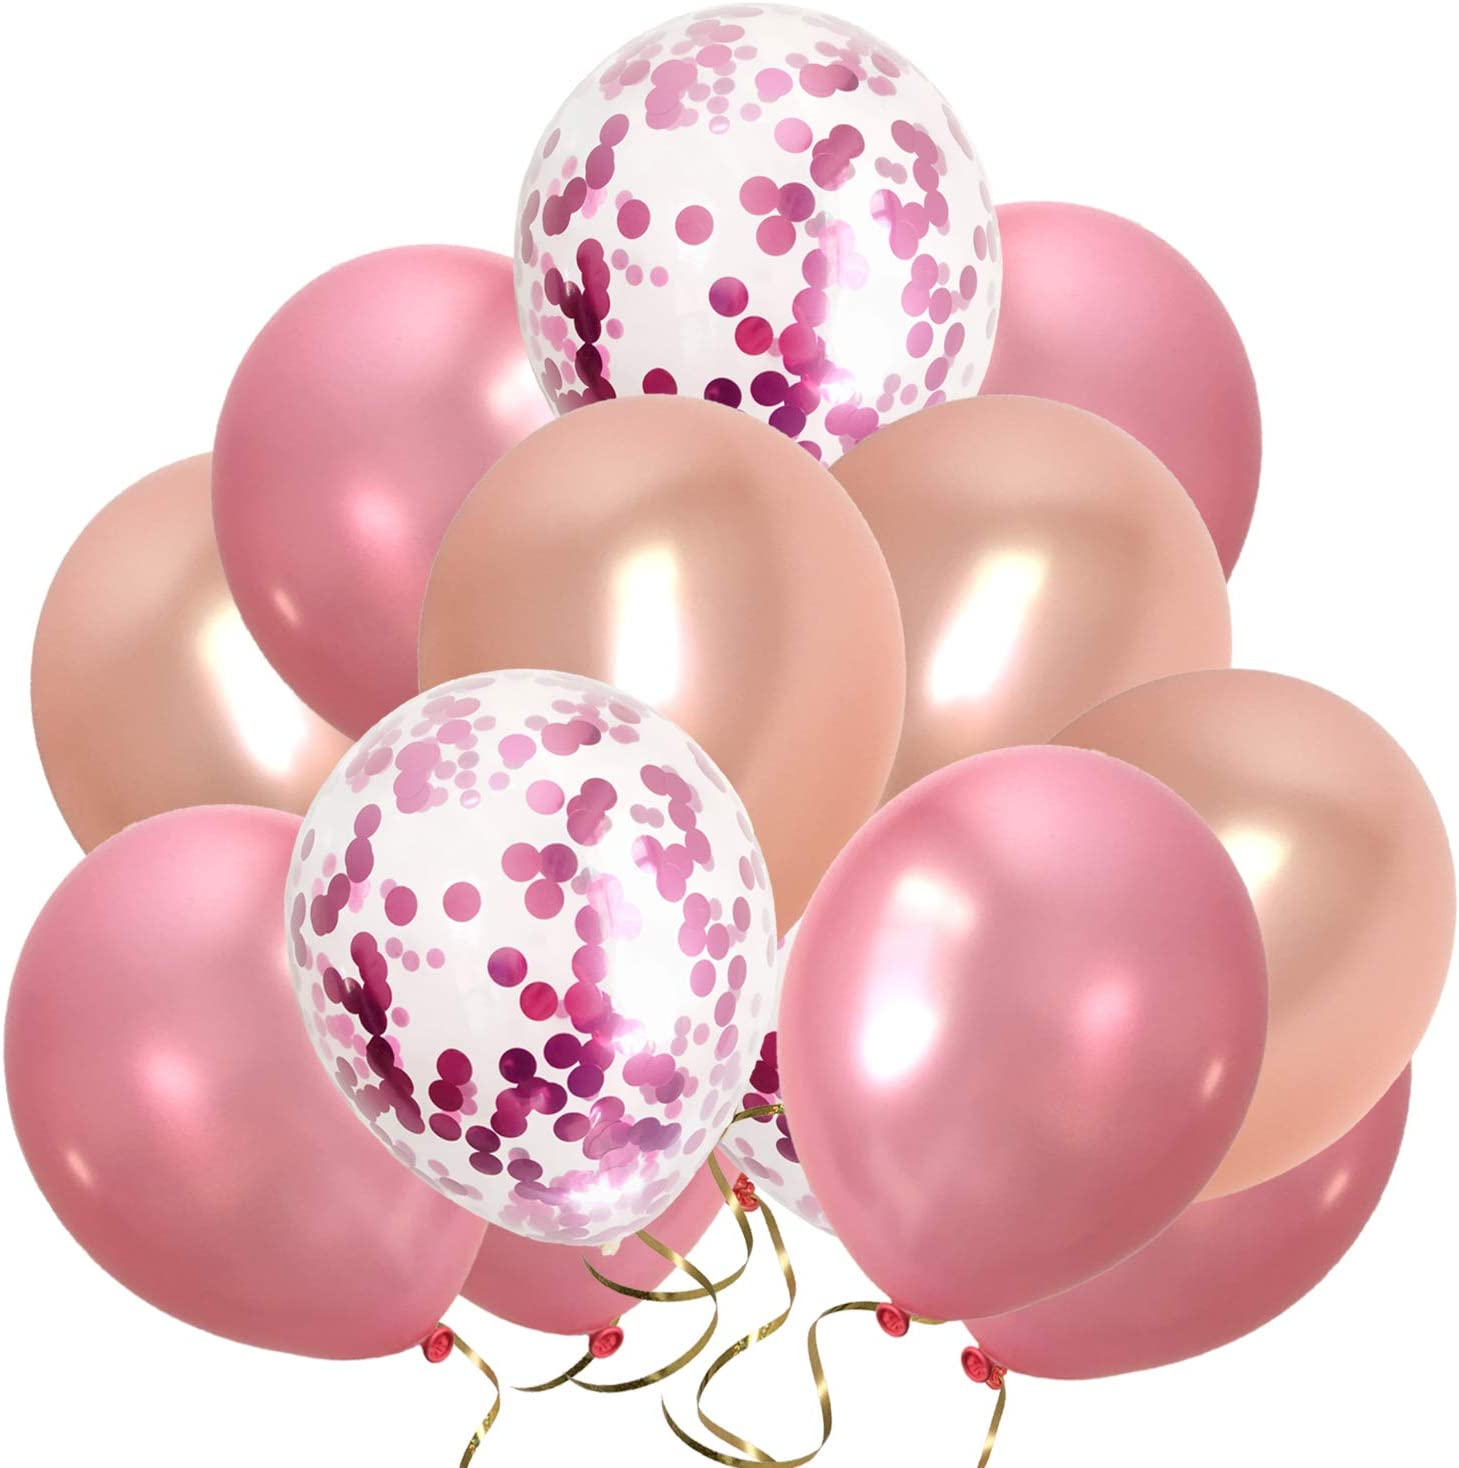 Amazon Com Rose Gold Pink Balloons Metallic Hot Pink Confetti Balloons For Valentine S Day Bridal Shower Women Birthday Party Decorations 80packs 12inch Rose Pink Gold Toys Games